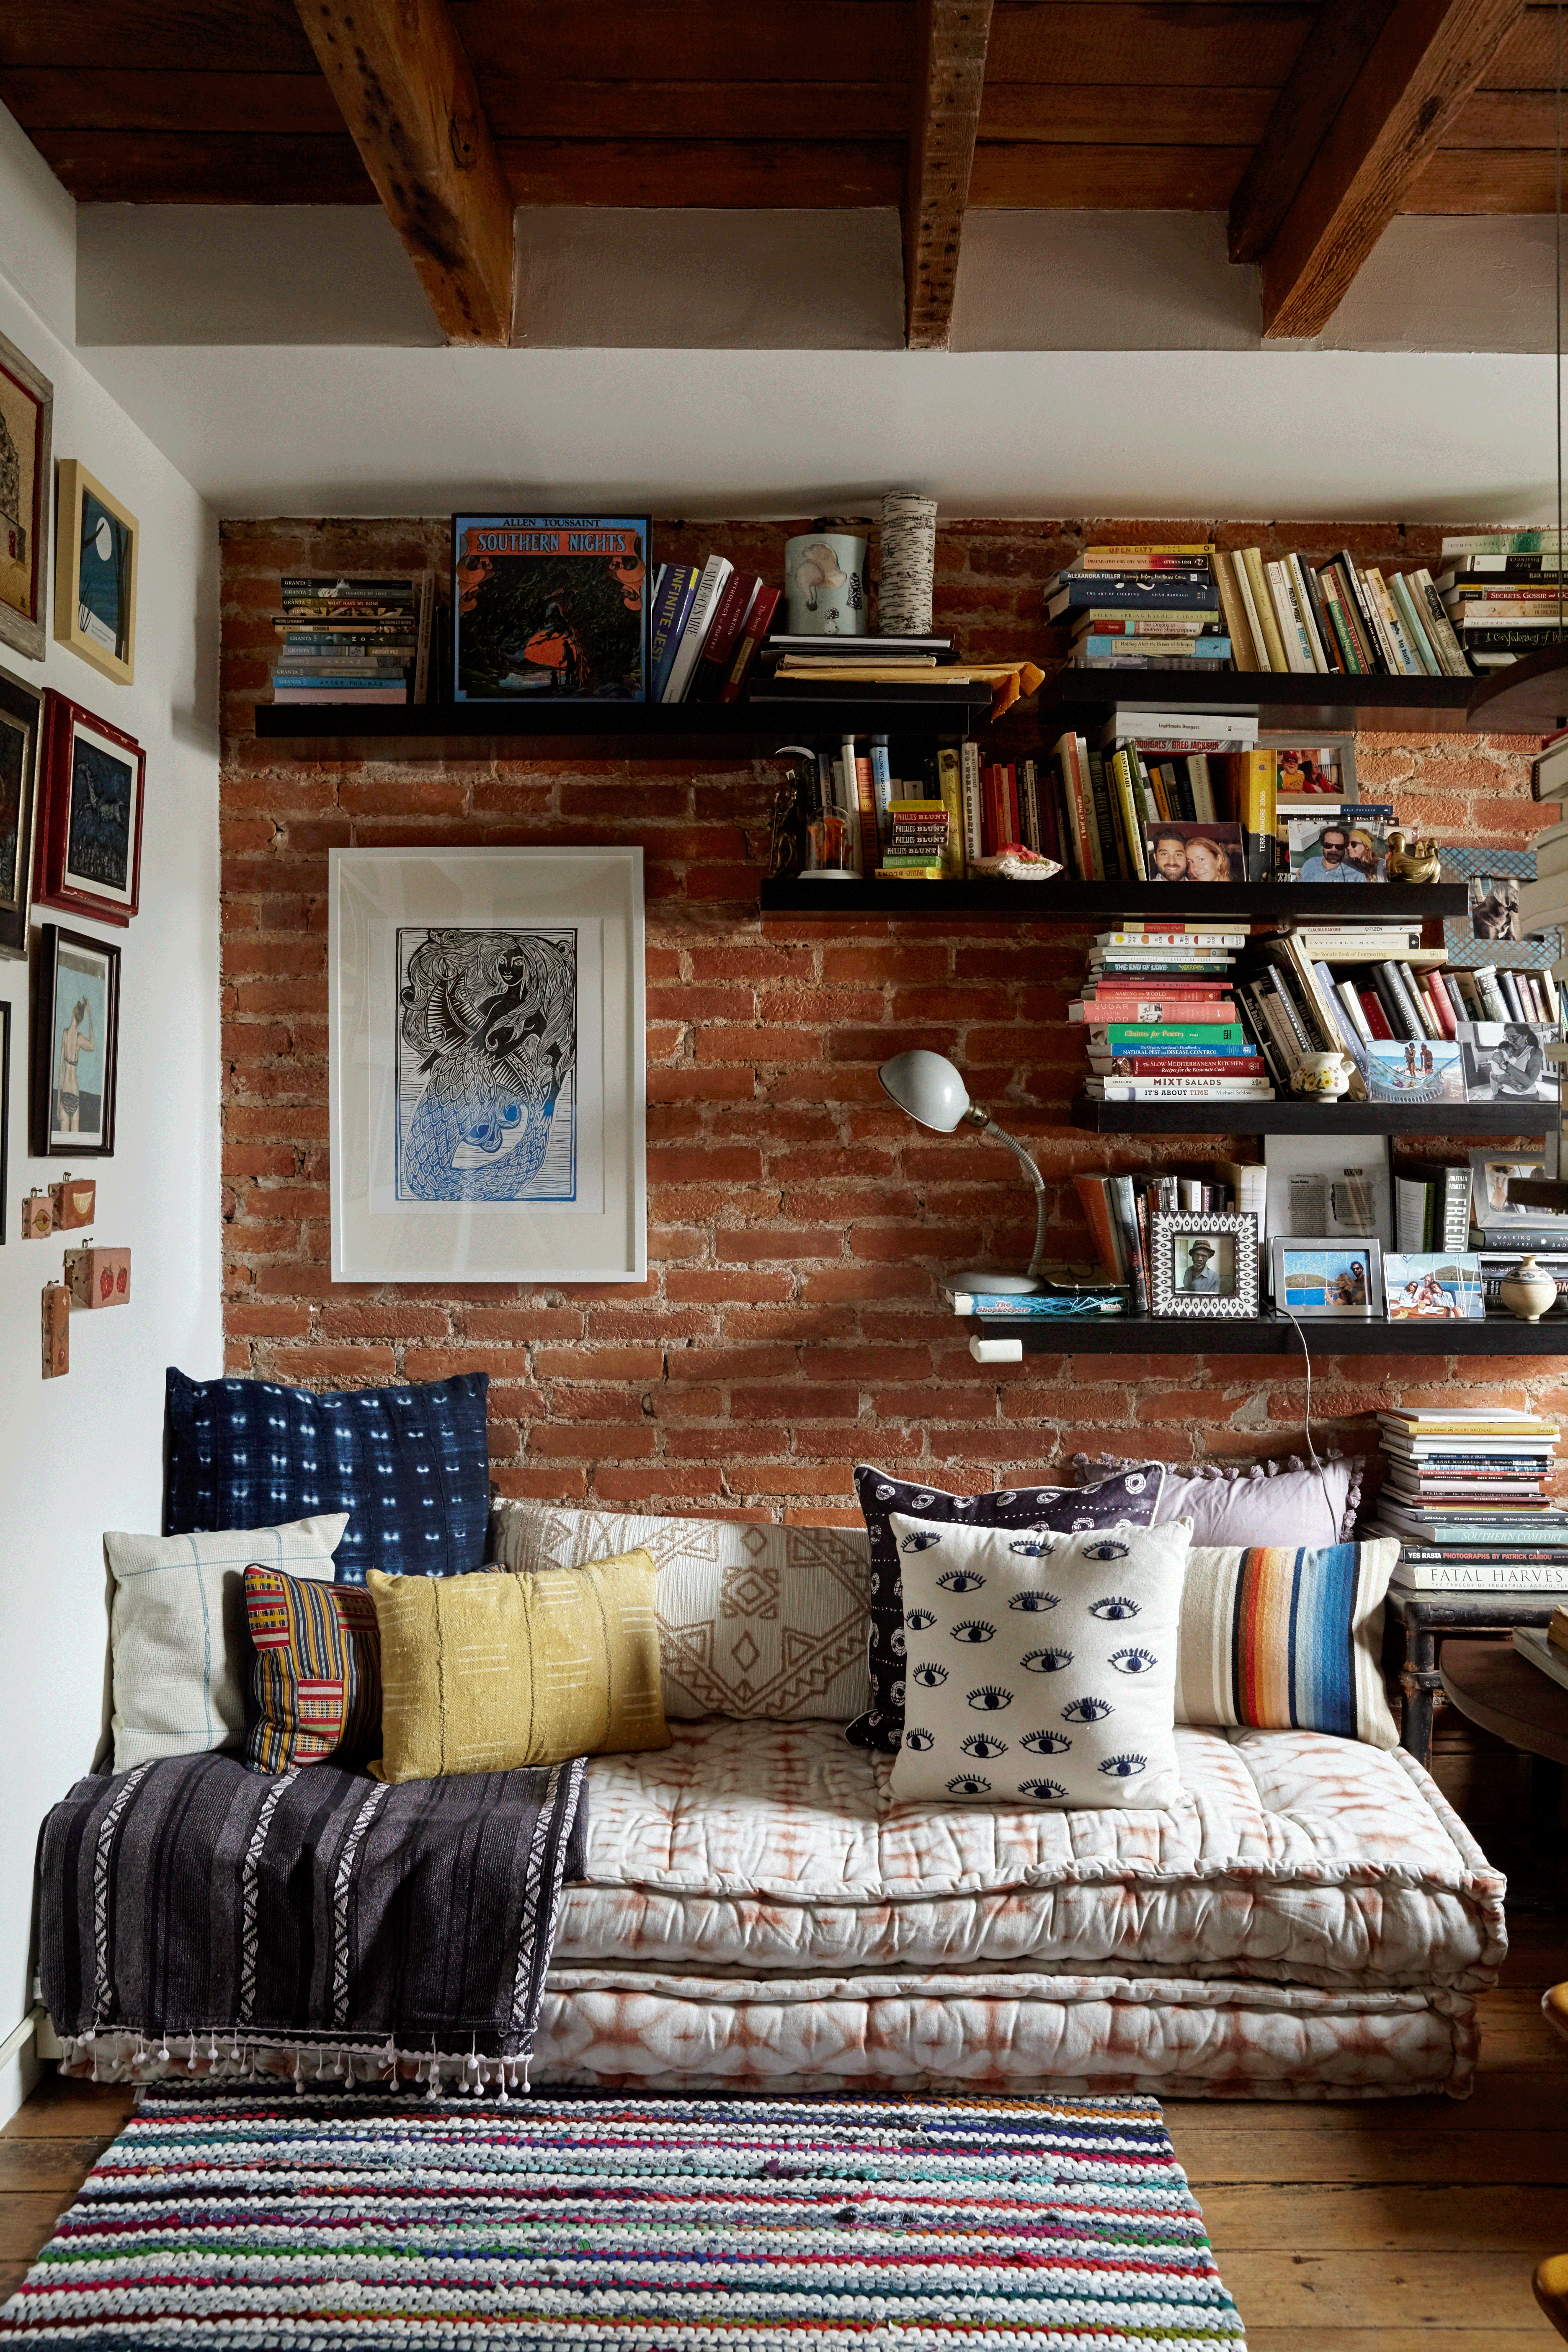 How to Fit a Reading Nook into the Smallest of Spaces